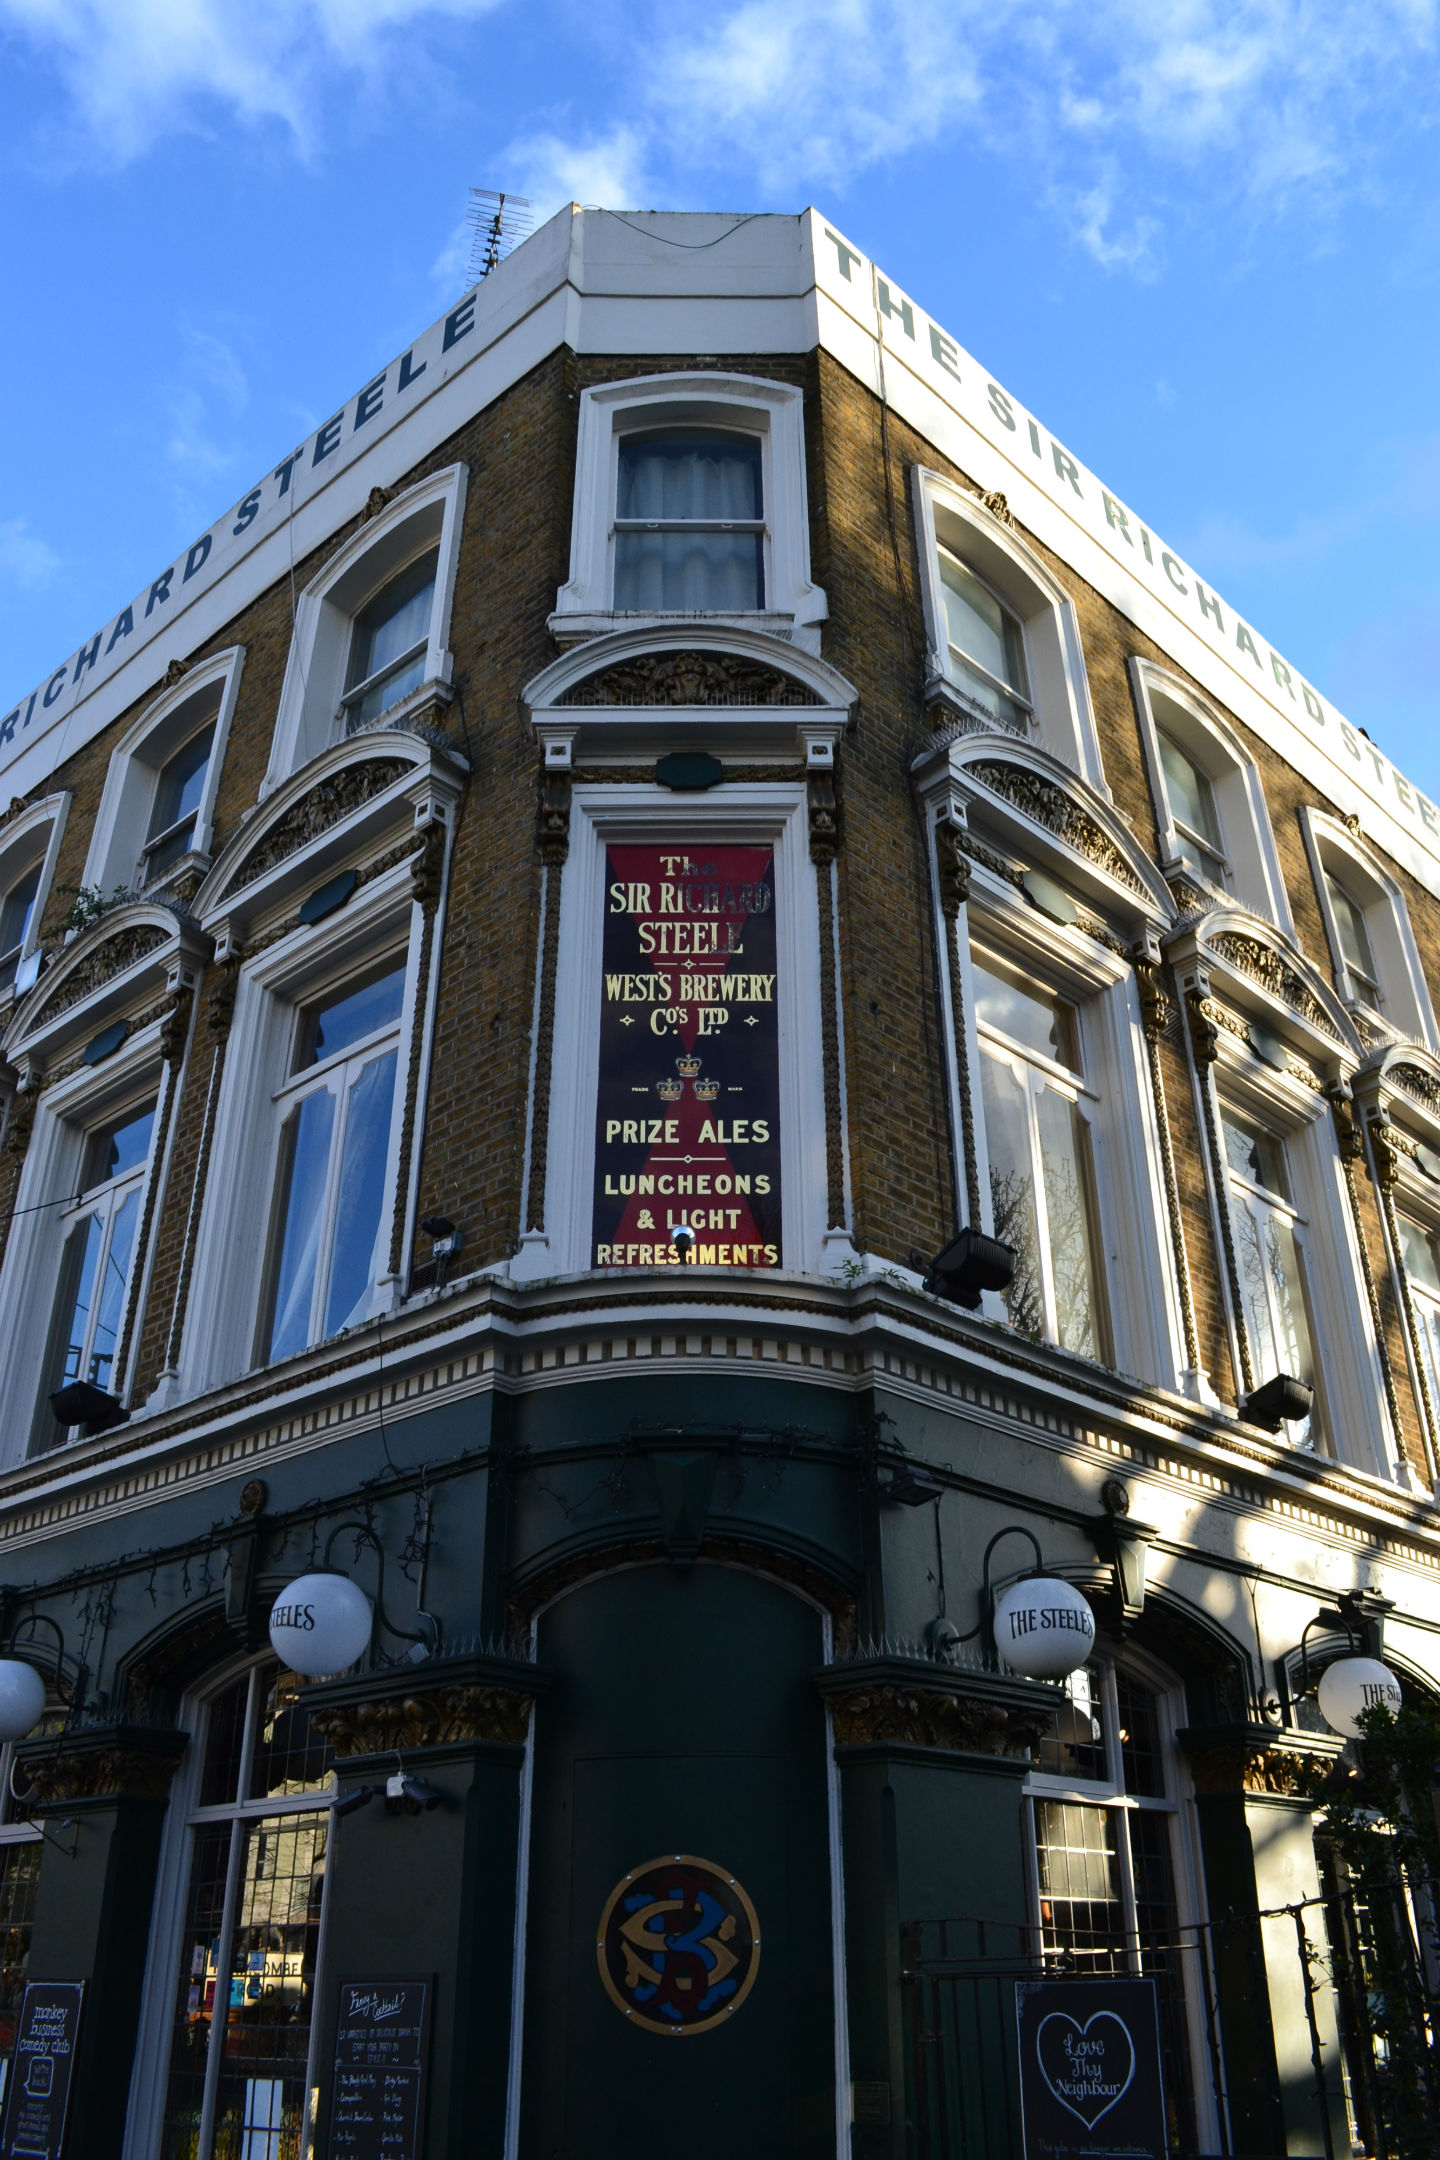 A legendary north London pub: all staff and the manager have been laid off as of today.